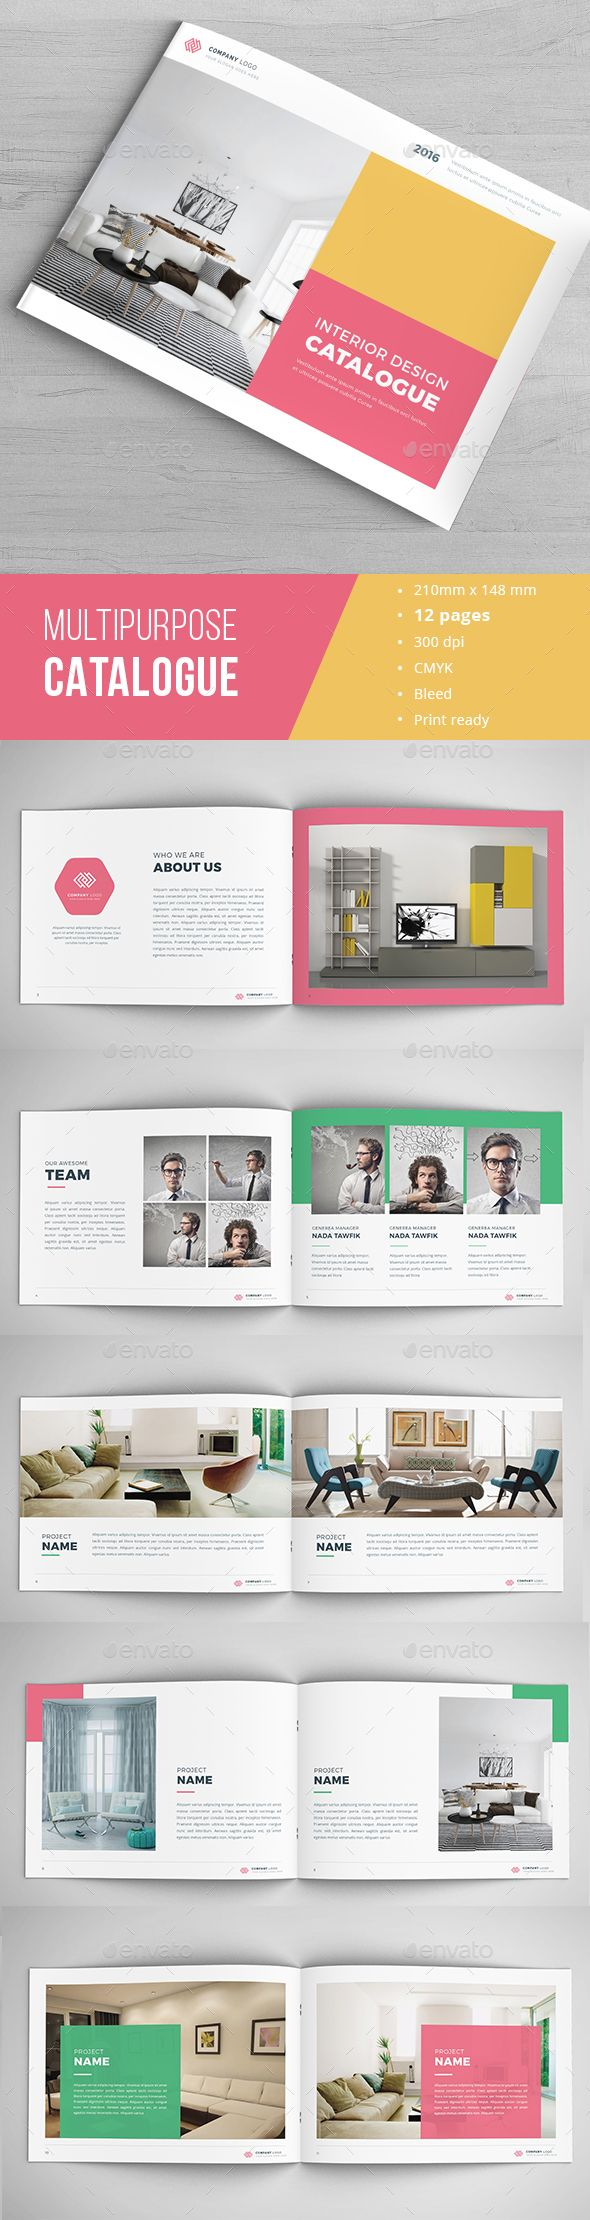 Modern Catalogue Template InDesign INDD. Download here: http://graphicriver.net/item/modern-indesign-catalogue-/16669789?ref=ksioks